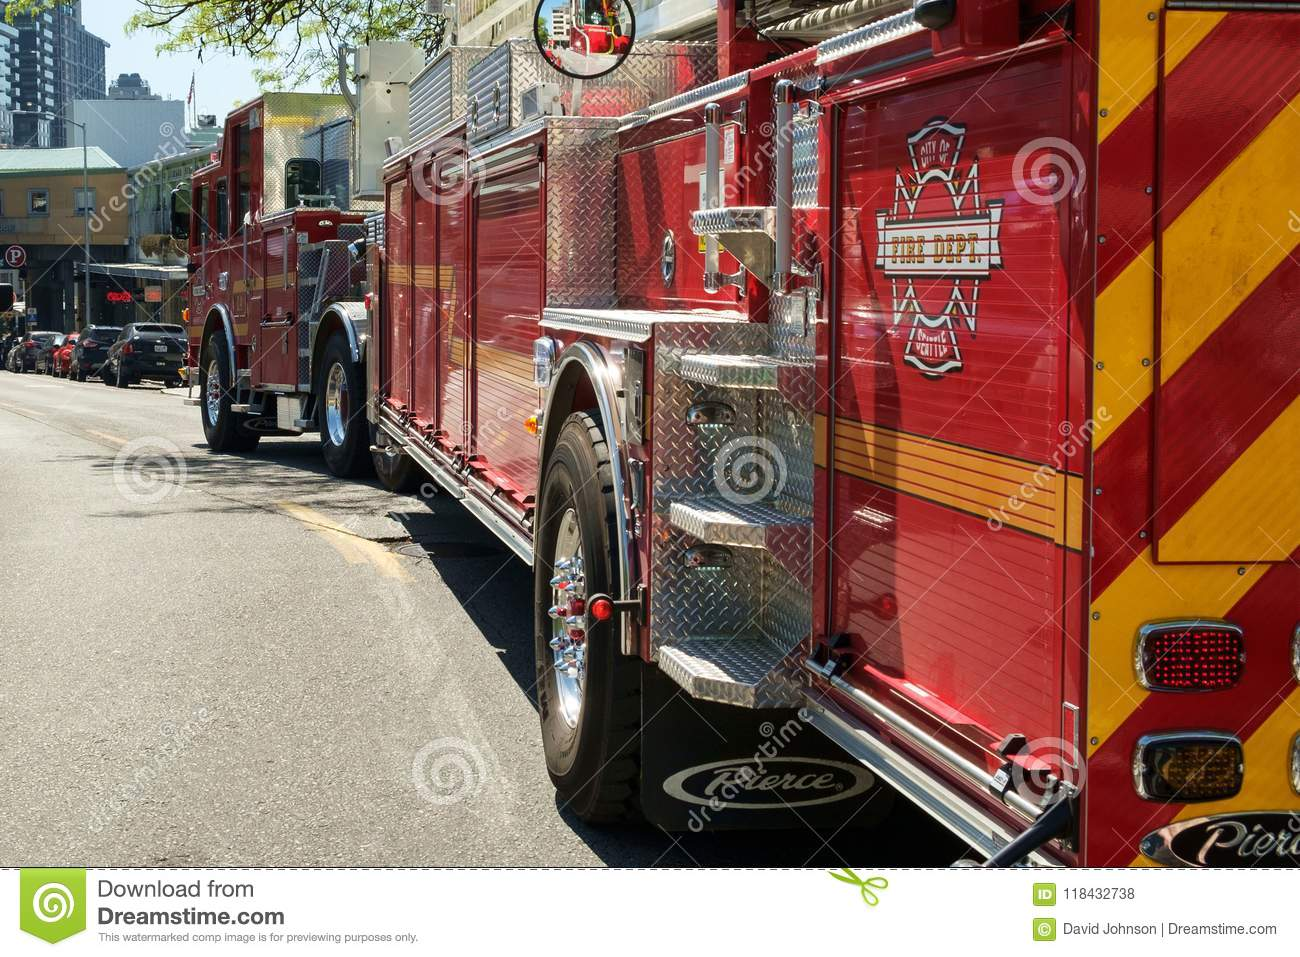 Seattle fire truck editorial stock photo  Image of vehicle